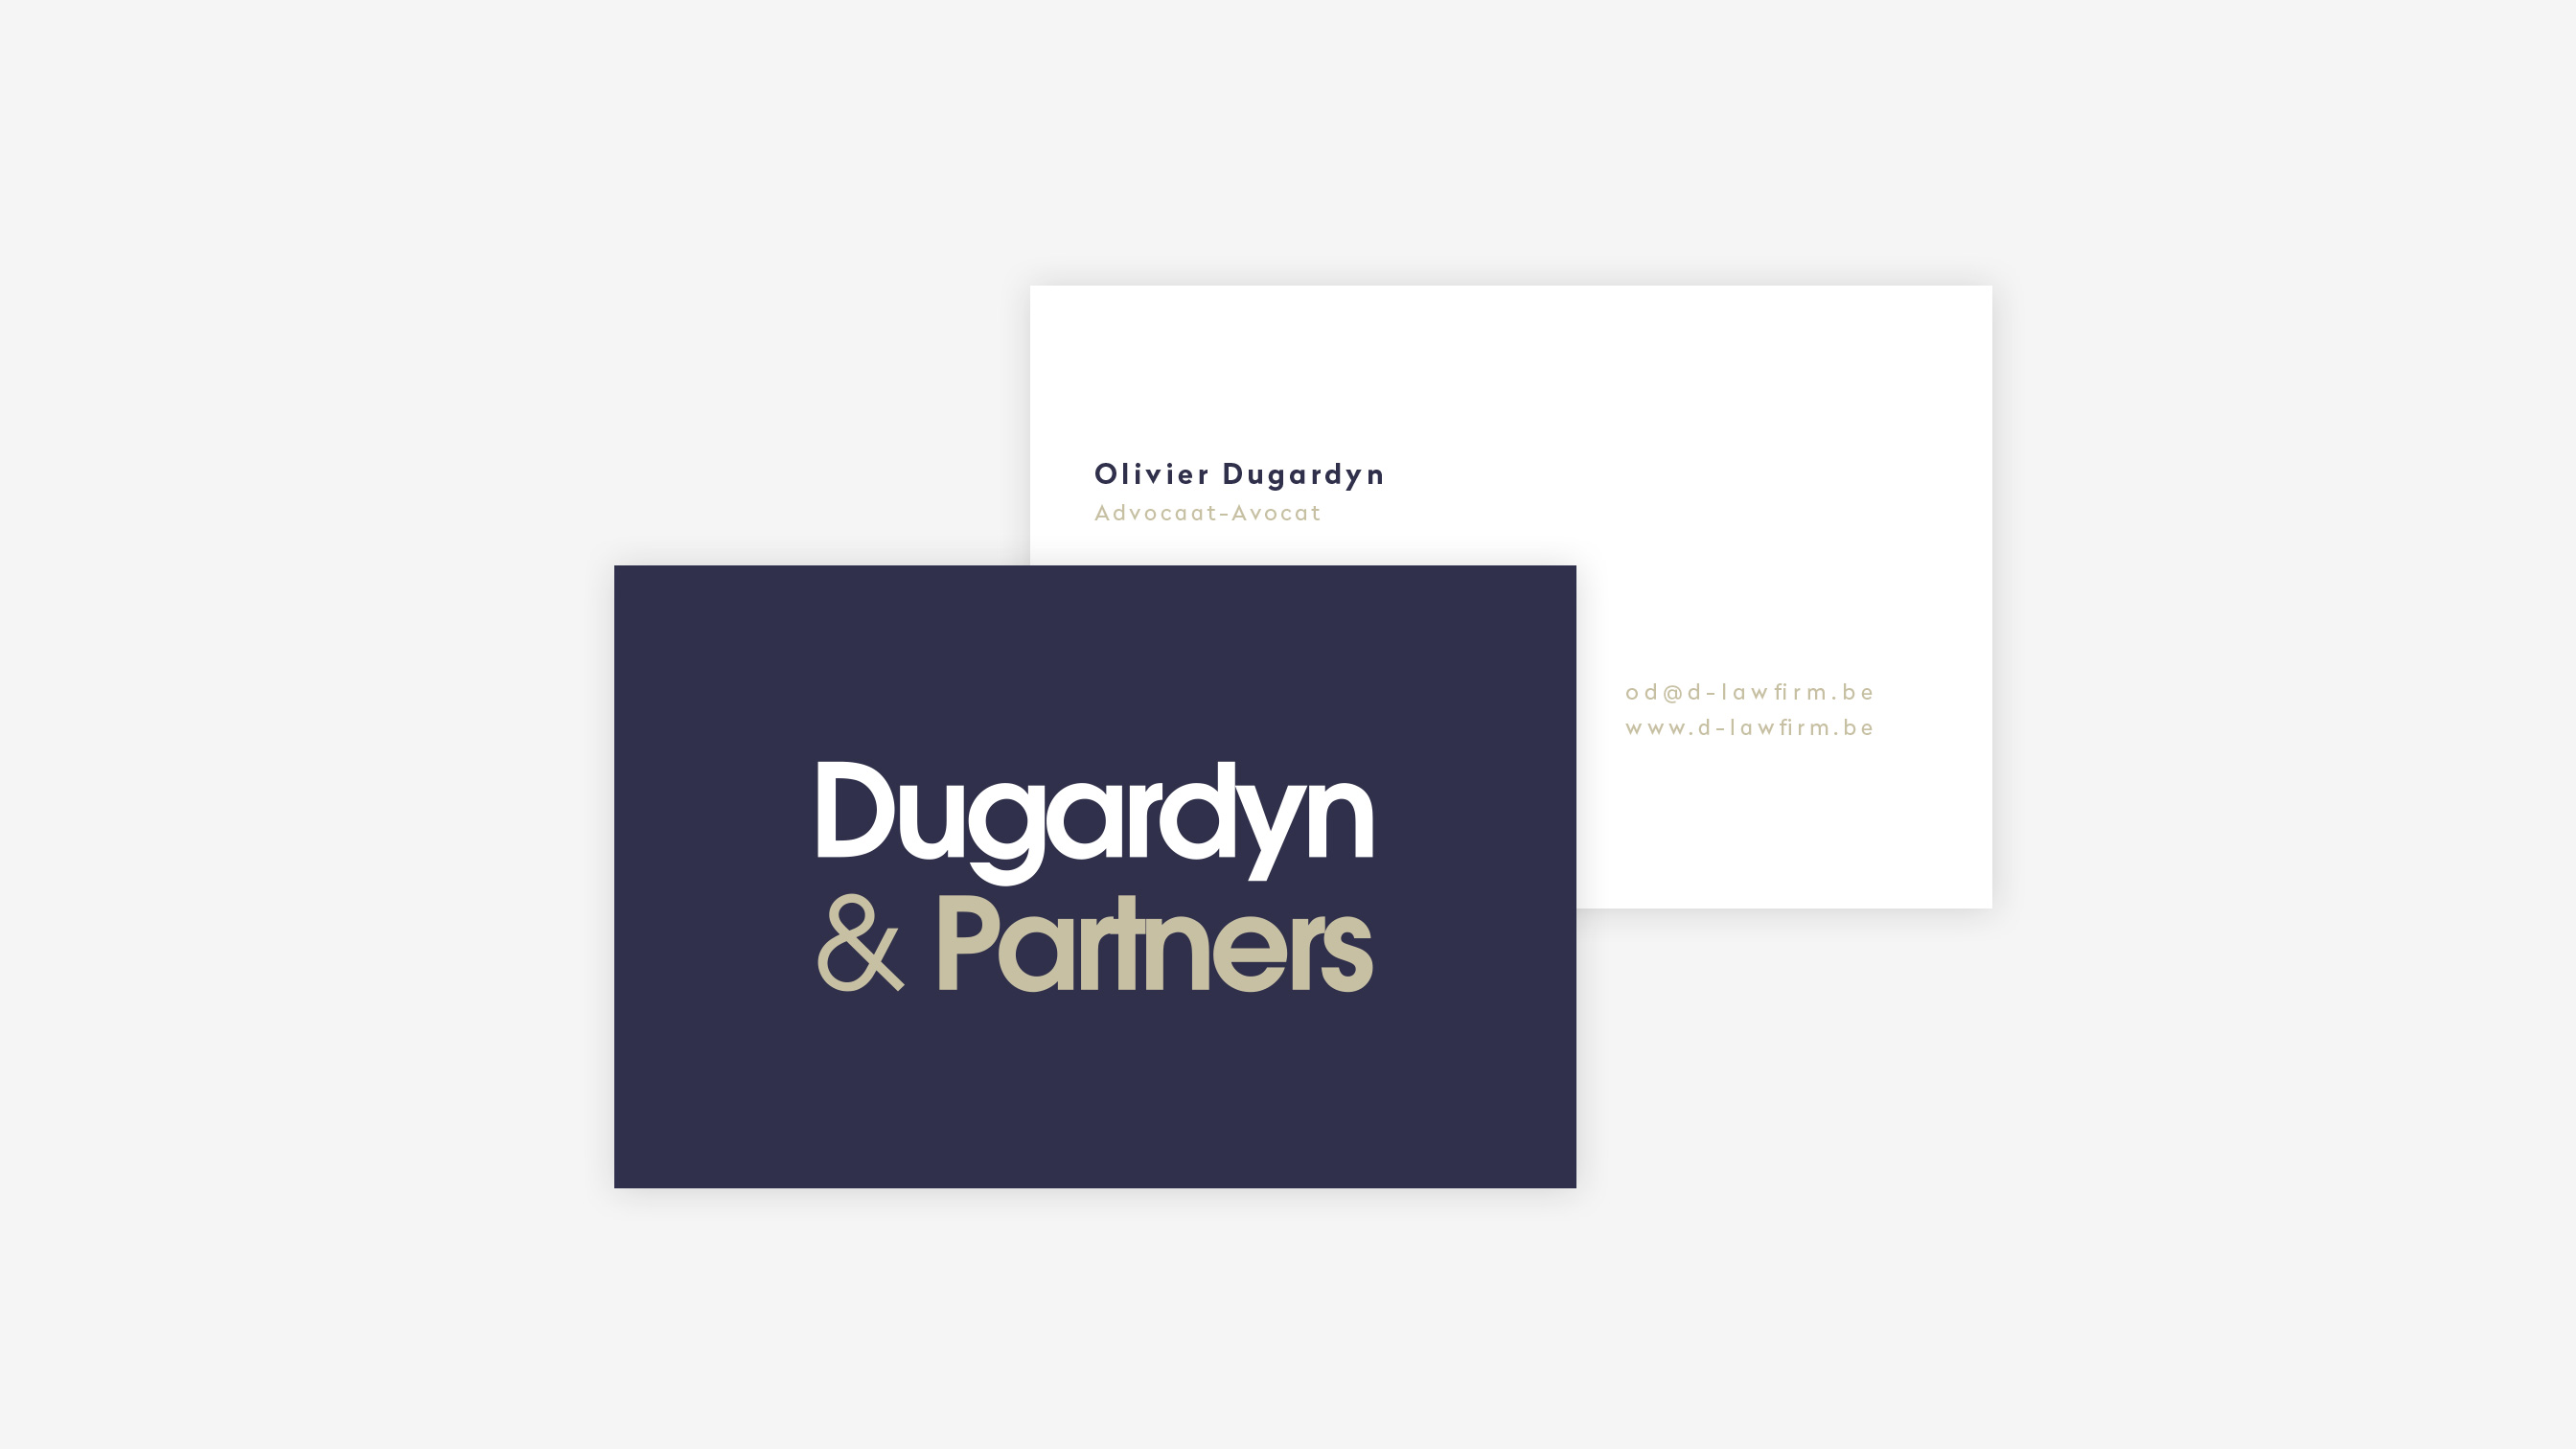 03-dugardyn-et-partners-pikteo-webdesign-graphic-design-freelance-paris-bruxelles-londres